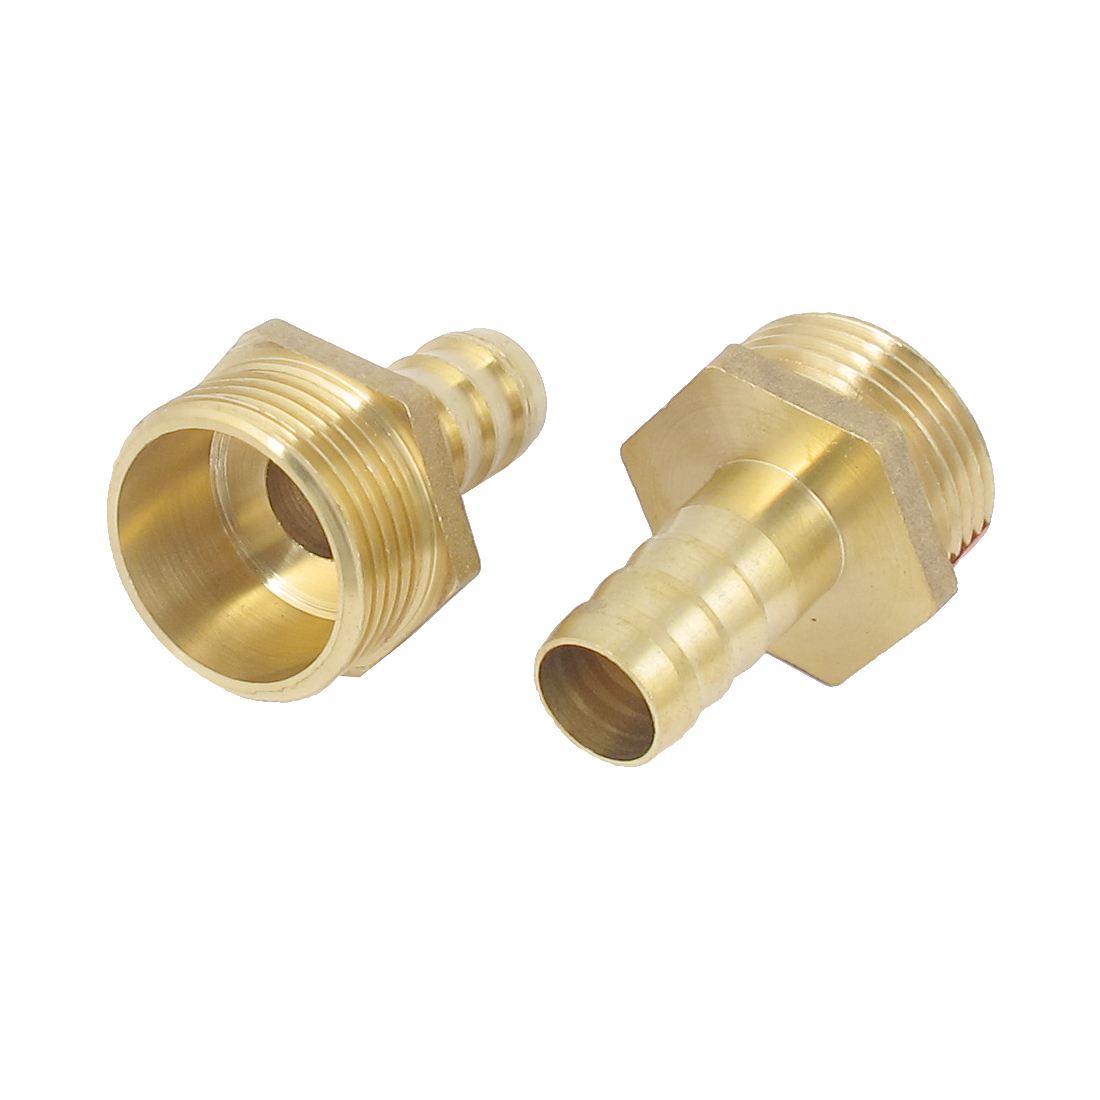 Brass 1BSP Male Thread to 16mm Hose Barb Straight Fitting Adapter Coupler 2 PCS